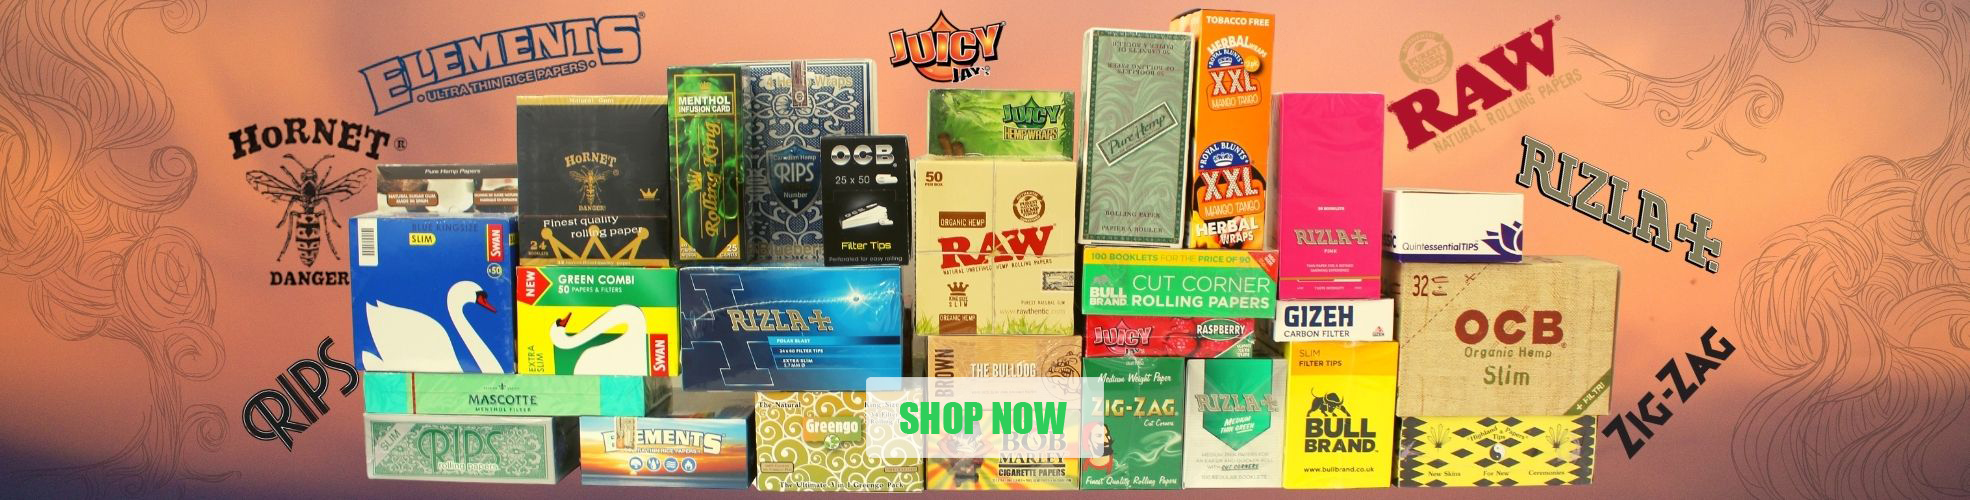 Wholesale Rizla Raw Rips Smoking Papers